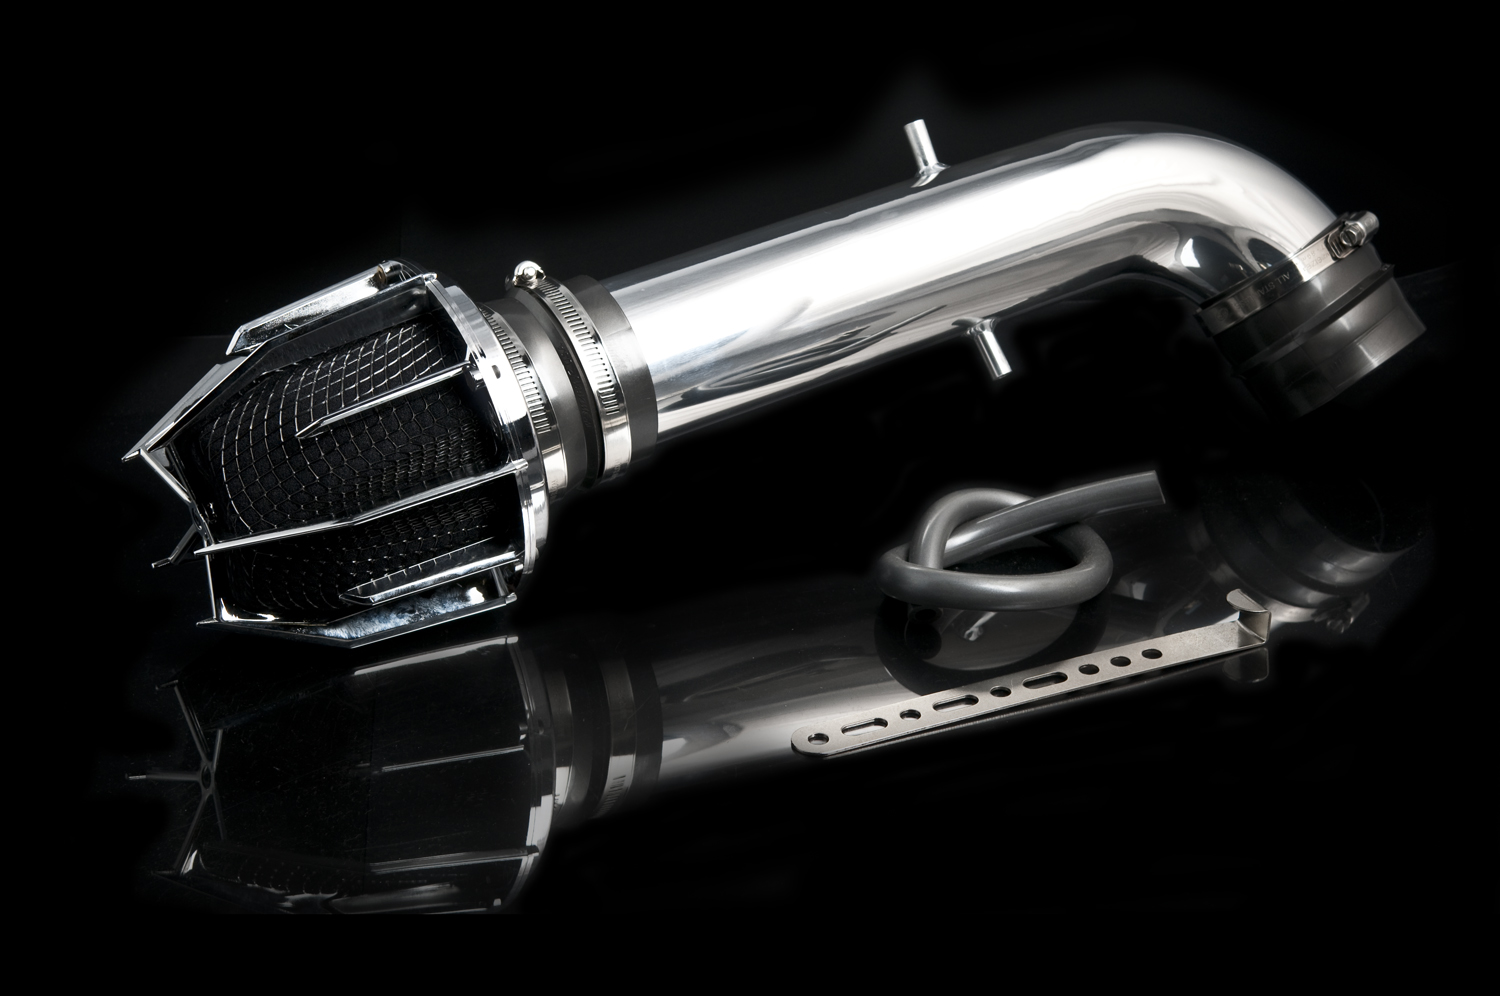 Acura MDX 2002-2003 Weapon-R Dragon Air Intake